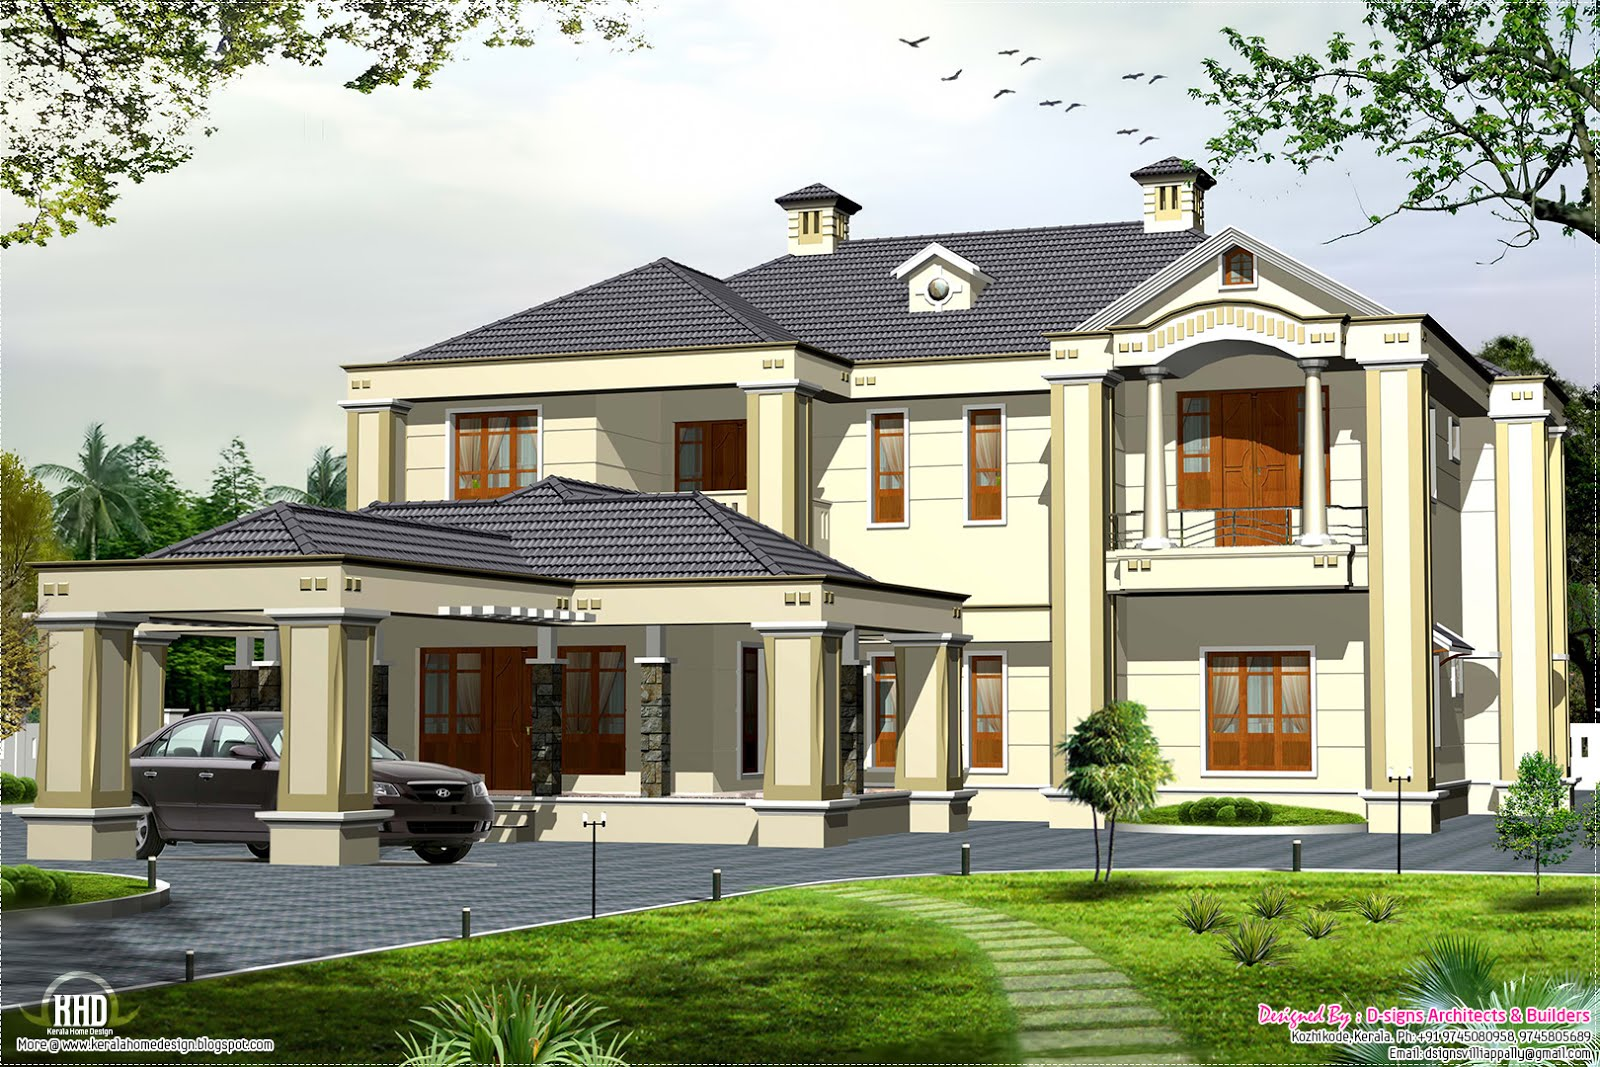 Colonial Style 5 Bedroom Victorian Style House Enter Your Blog Name Here